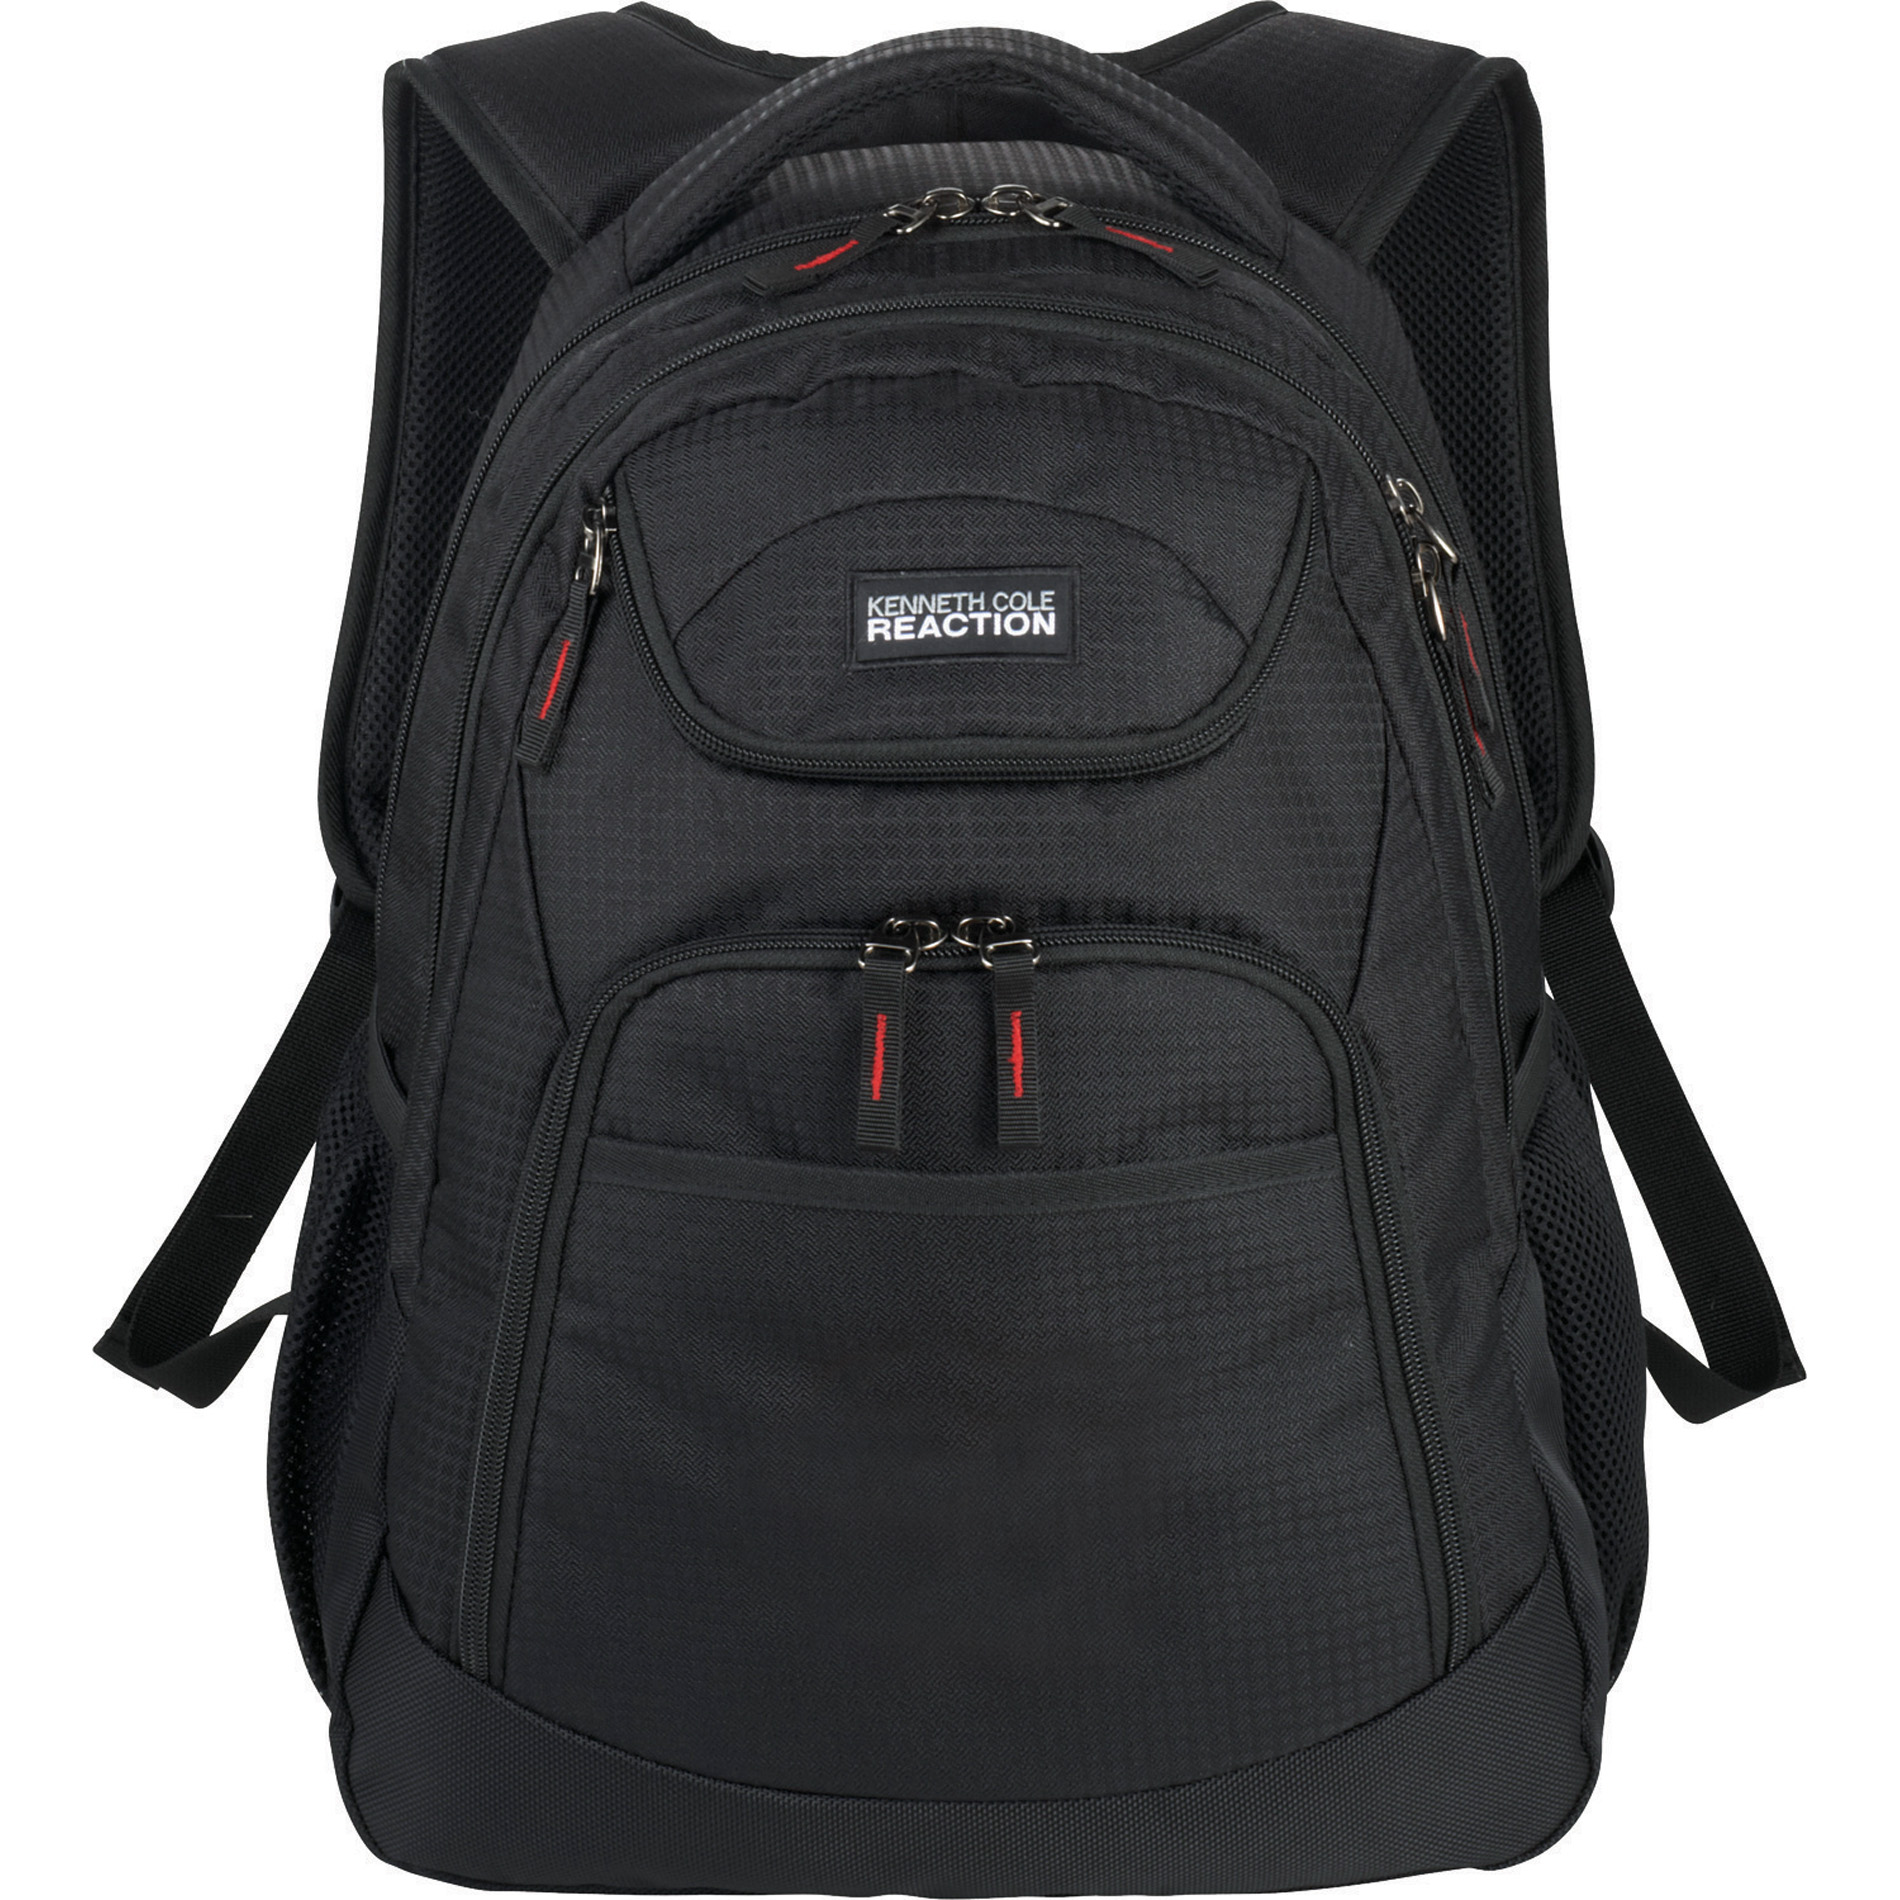 Kenneth Cole 9950-56 - Reaction 15 Computer Backpack